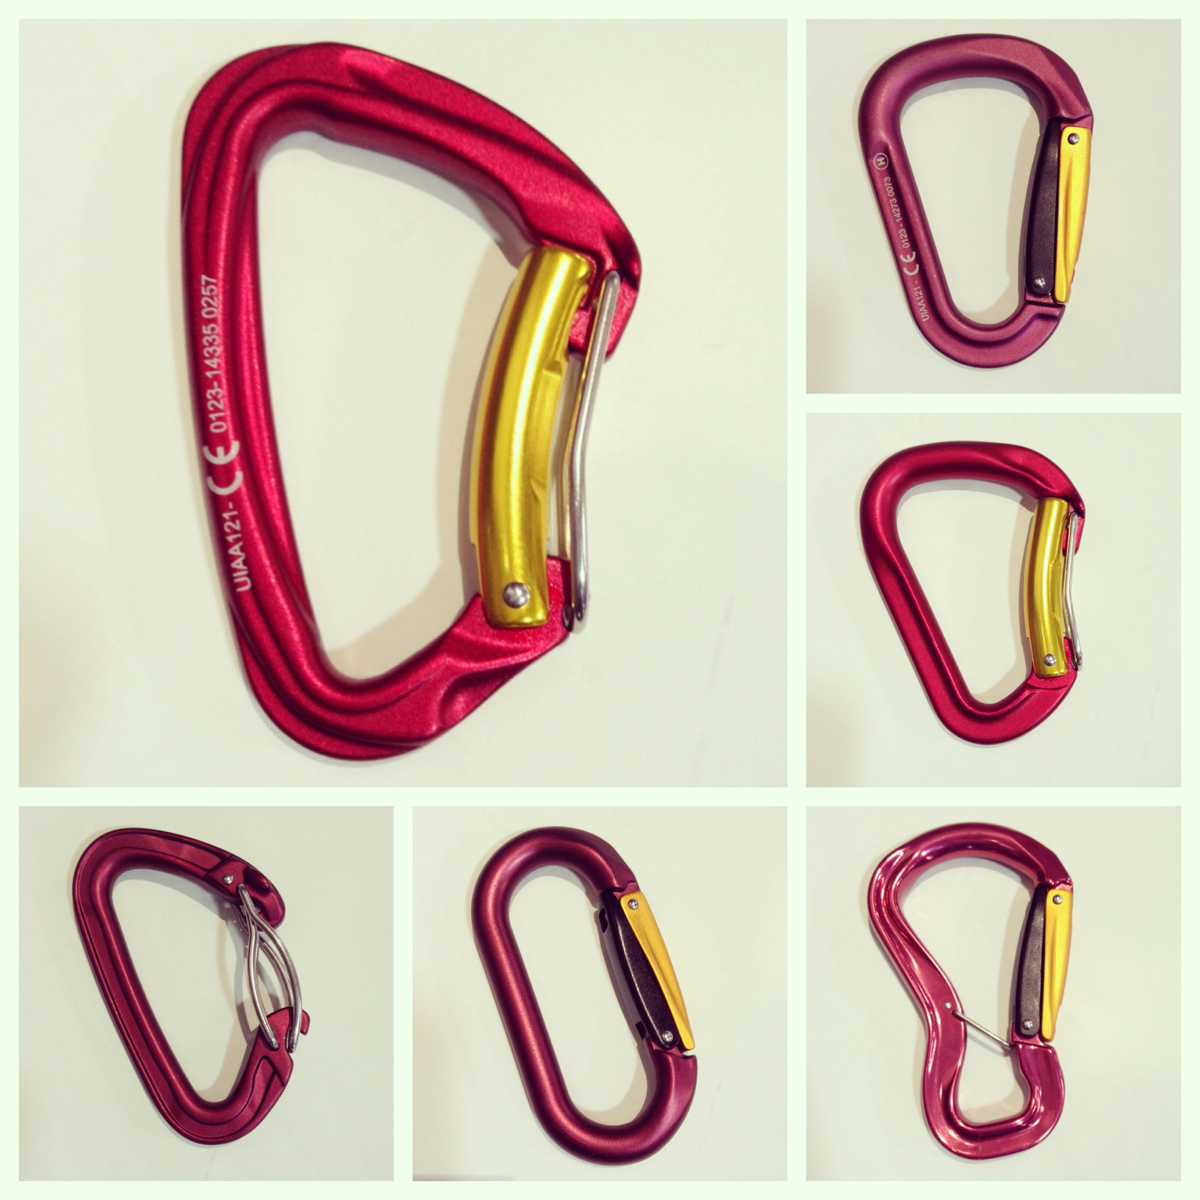 Grivel Twin Gate Carabiners